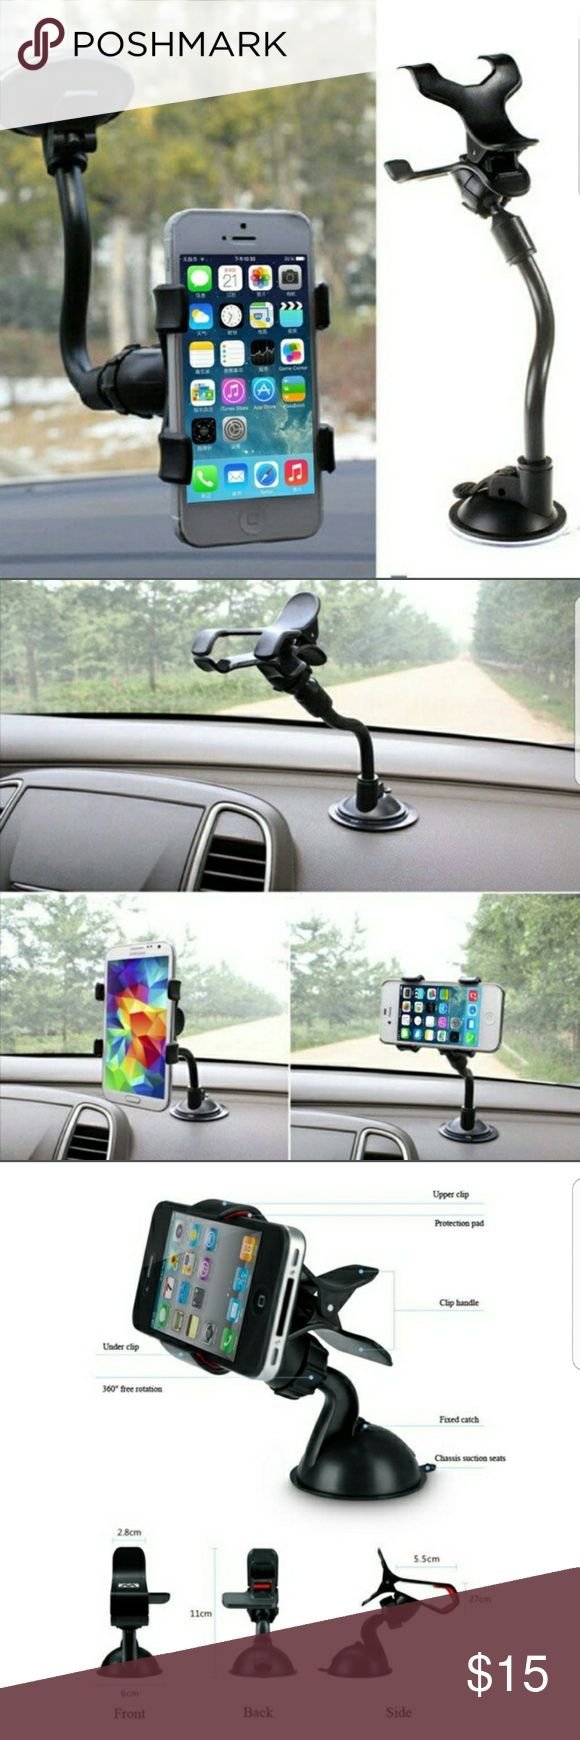 FREE UNIVERSAL CAR MOUNT WITH A BUNDLE OF 4 ITEMS Universal car mount for smartphones, GPS, premium Windshield Dashboard Car Mount Holder for All Kinds of Smart Phones Accessories